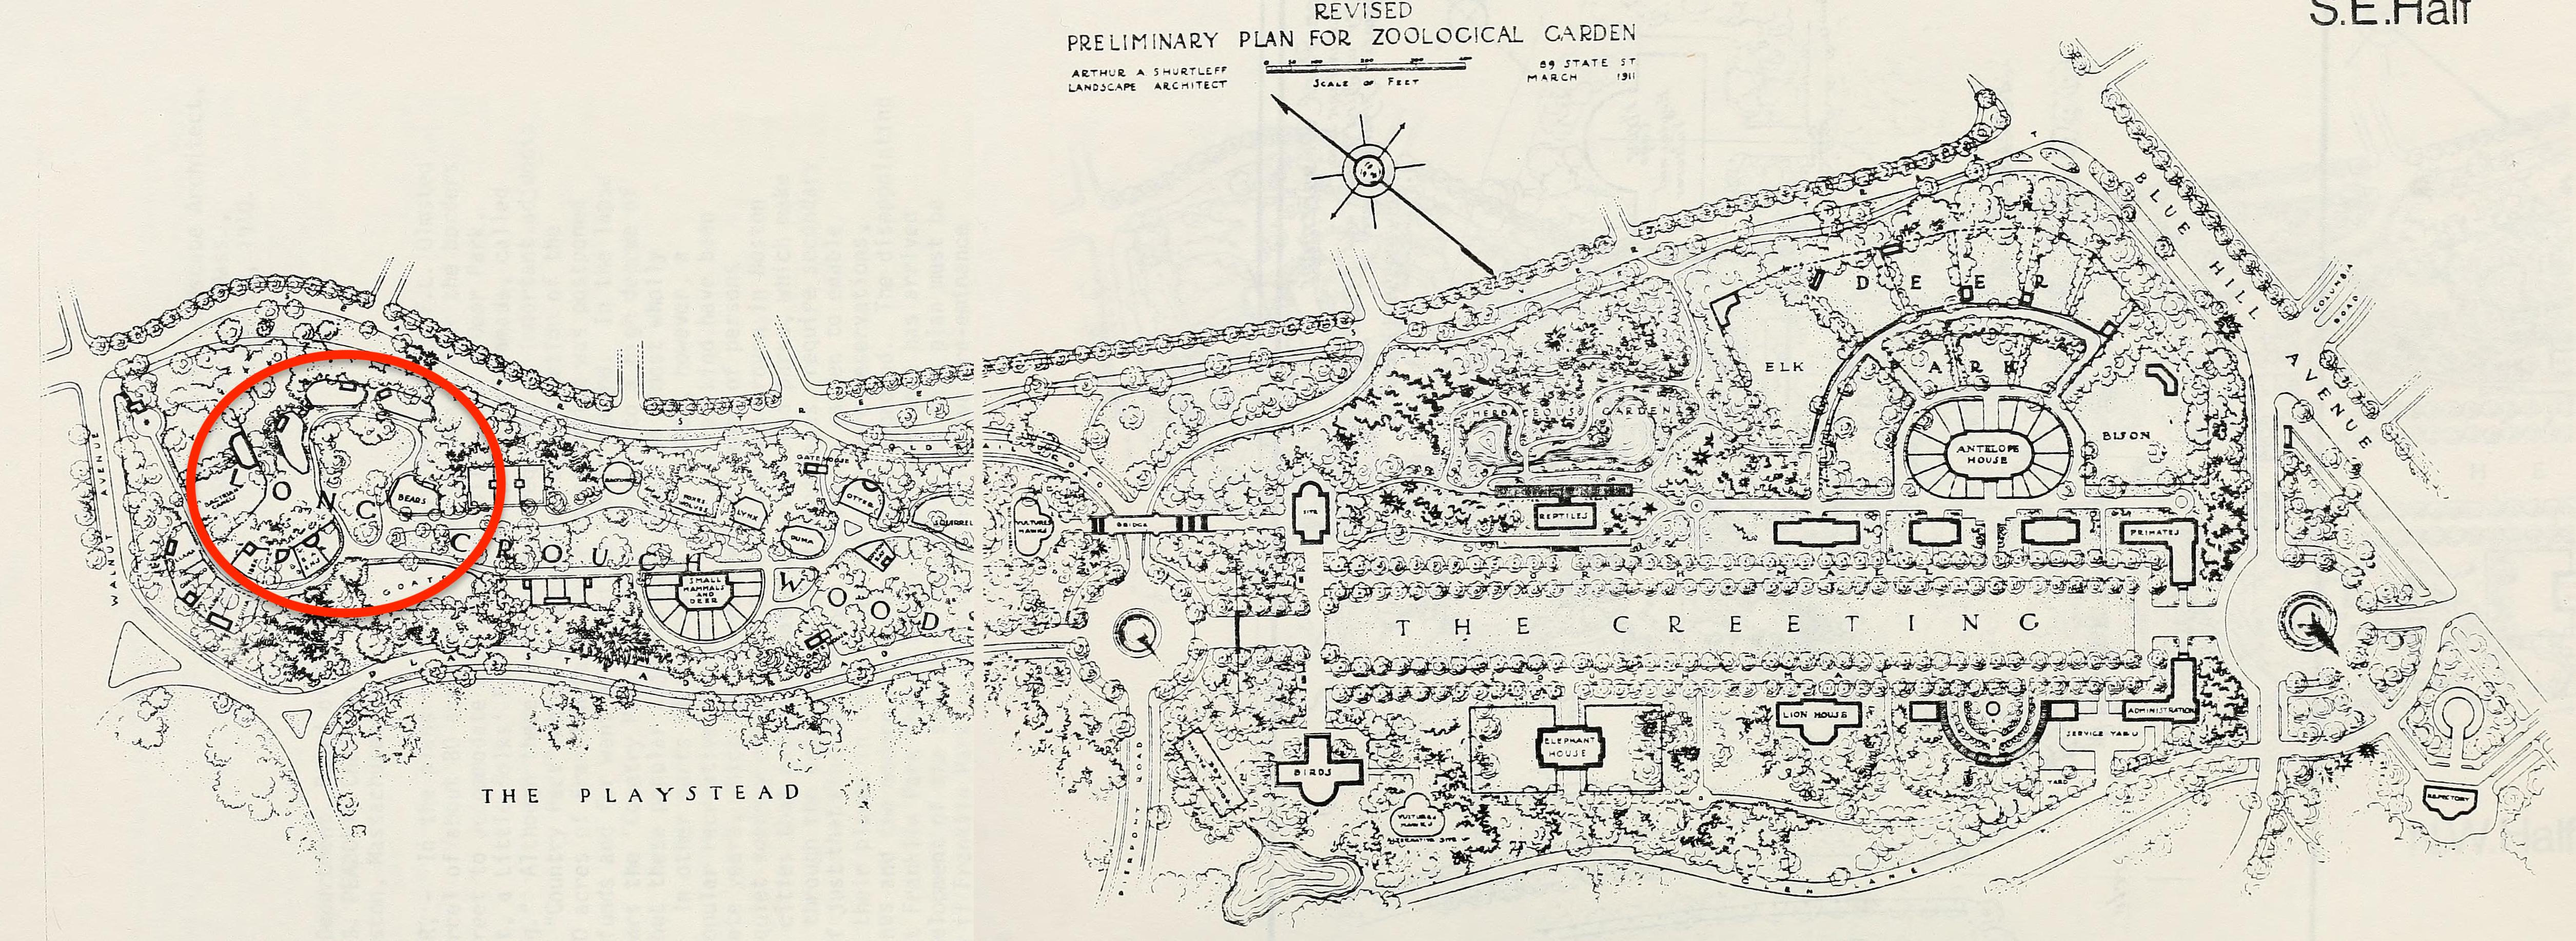 Arthur Shurtleff's 1911 plan for the Franklin Park Zoo, showing the location of the bear enclosures in the northwest portion.